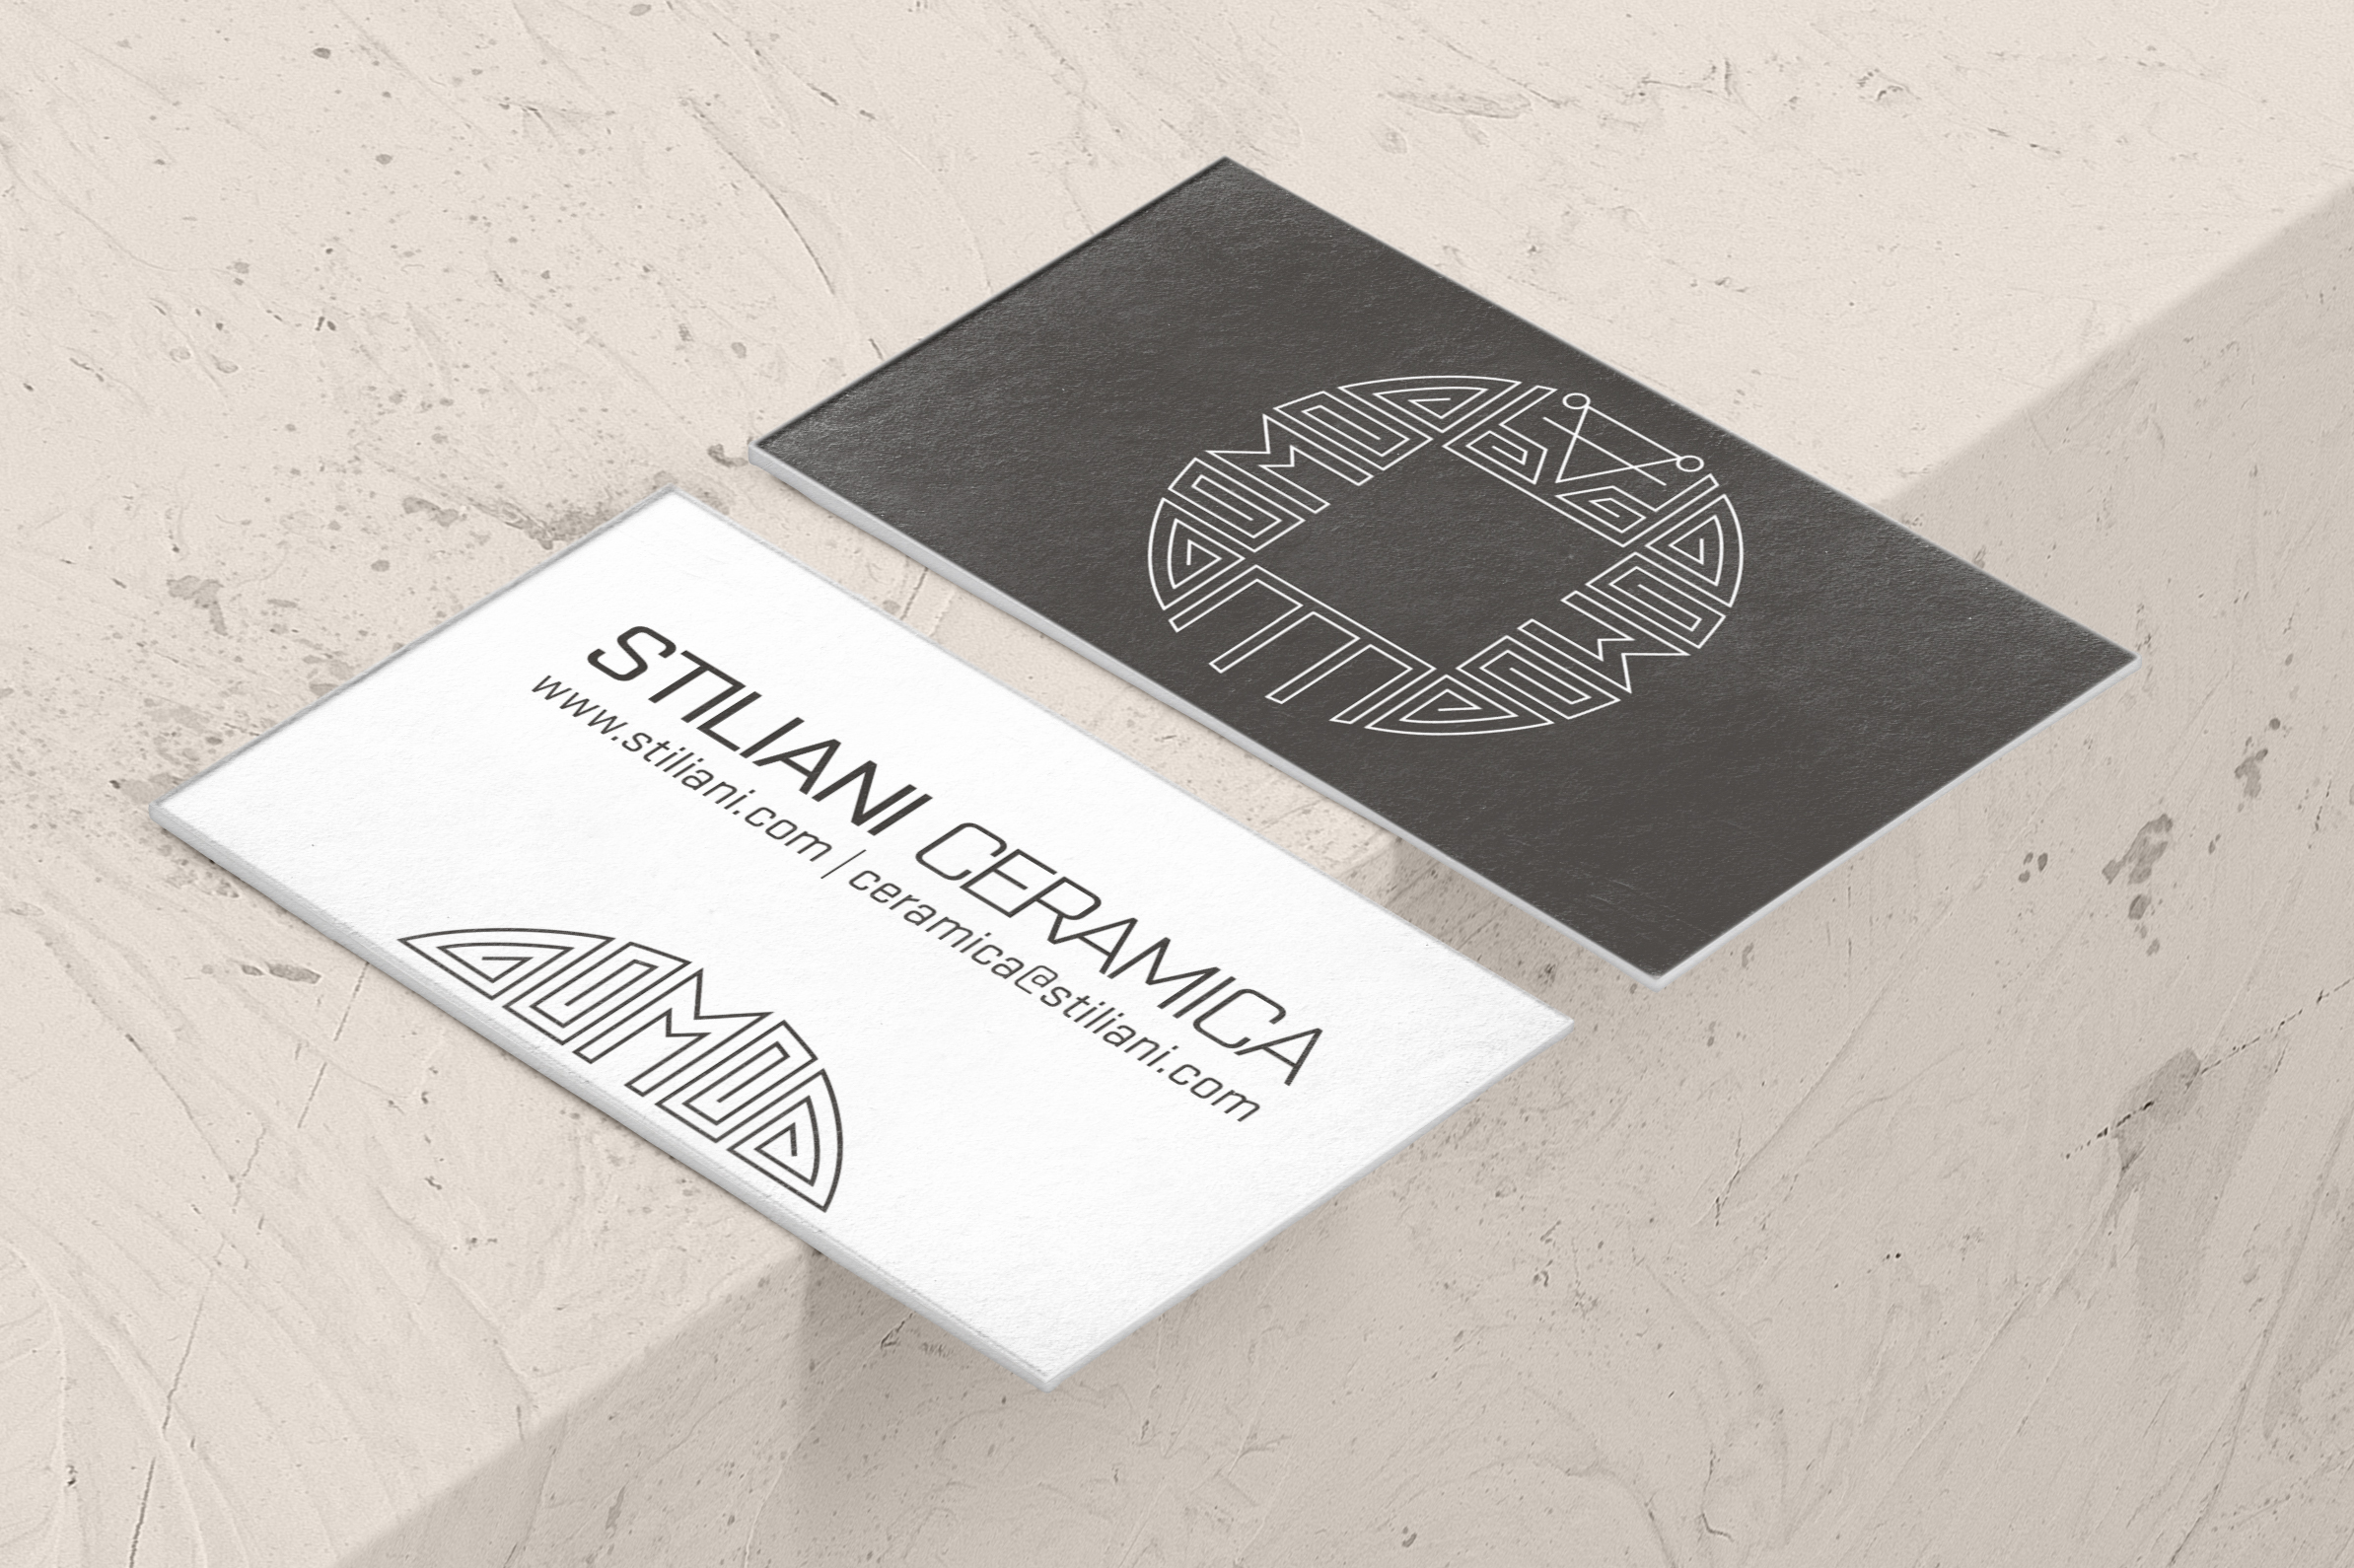 Stiliani_Businesscard-Mockup-presentation-vol-35.jpg